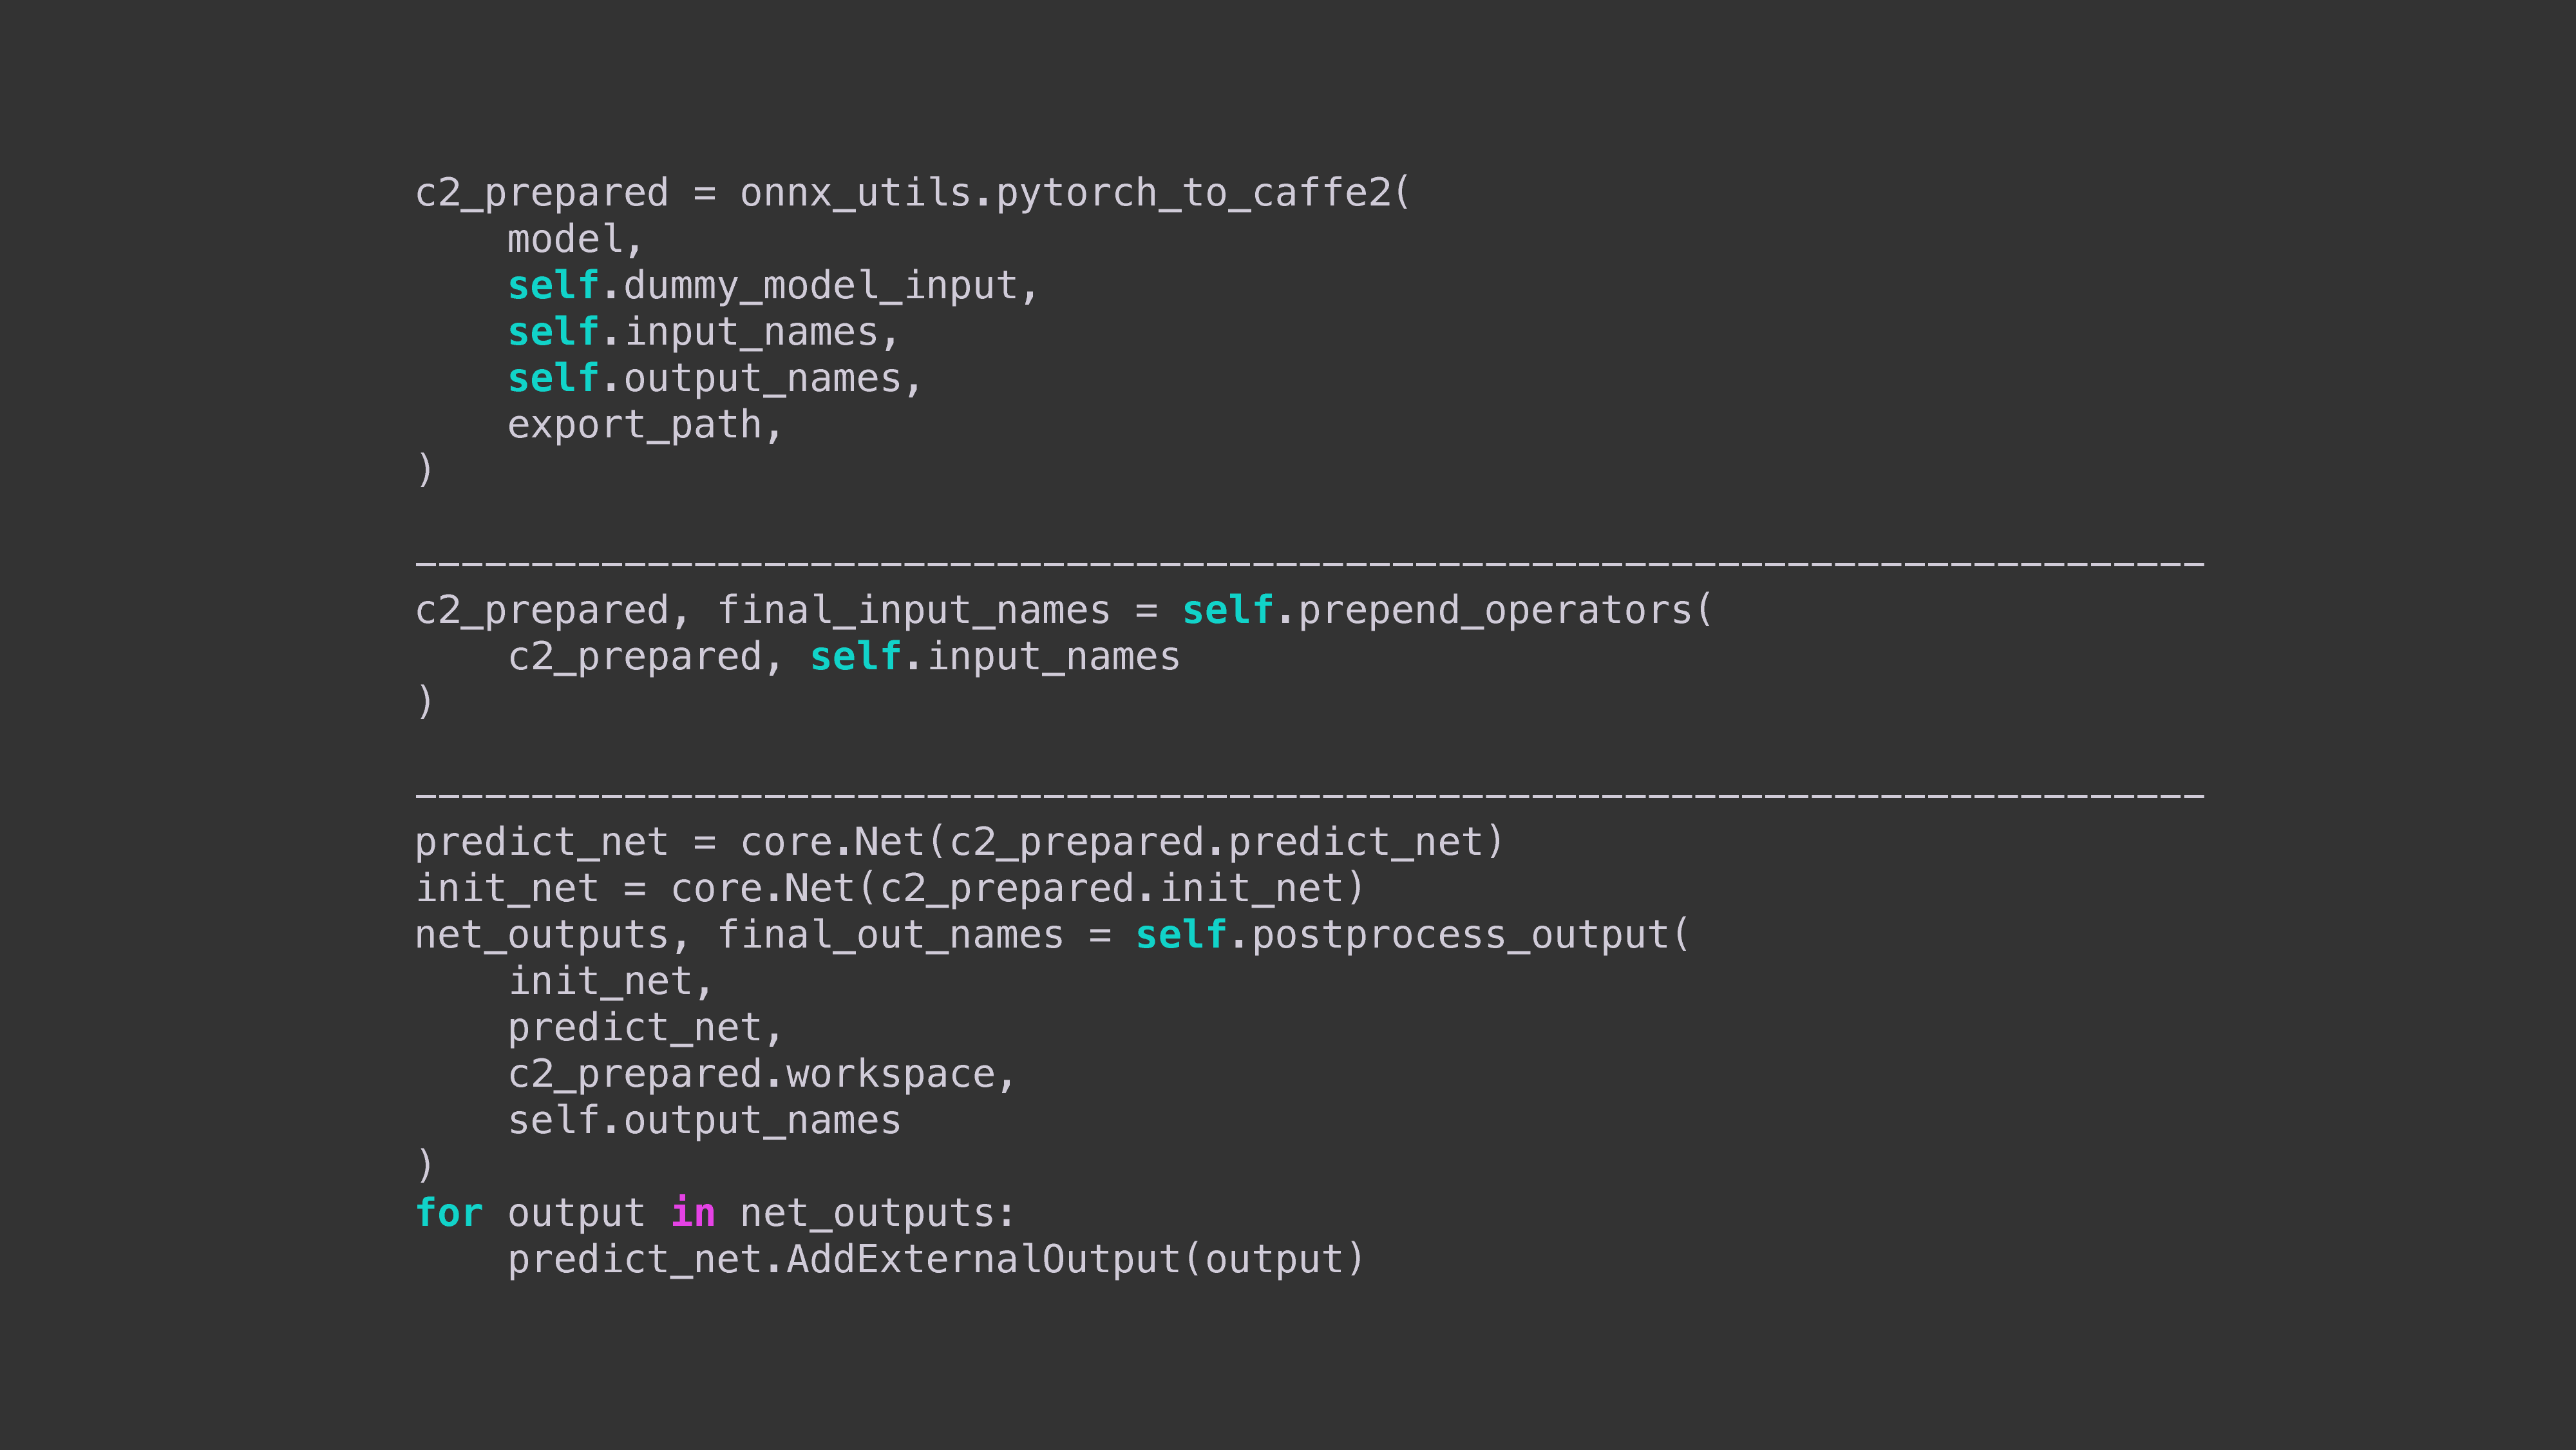 This code sample shows how to export a model to Caffe2 using ONNX, prepend an operator such as string2id, and then perform any necessary postprocessing.